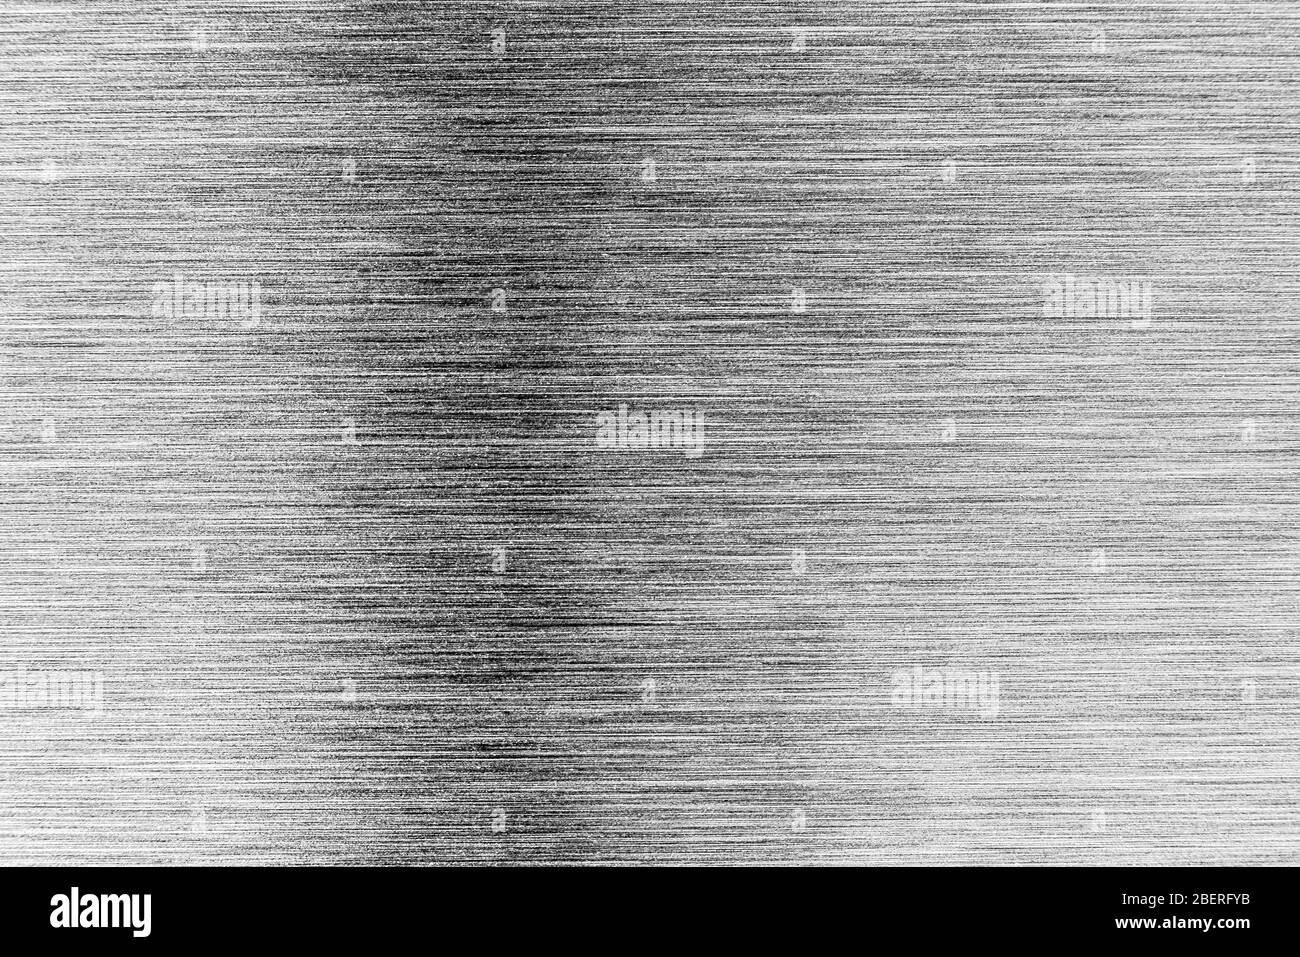 Silver Metal Texture With White Scratches Abstract Noise Black Background Overlay For Design Art Stylized Baner Stock Photo Alamy